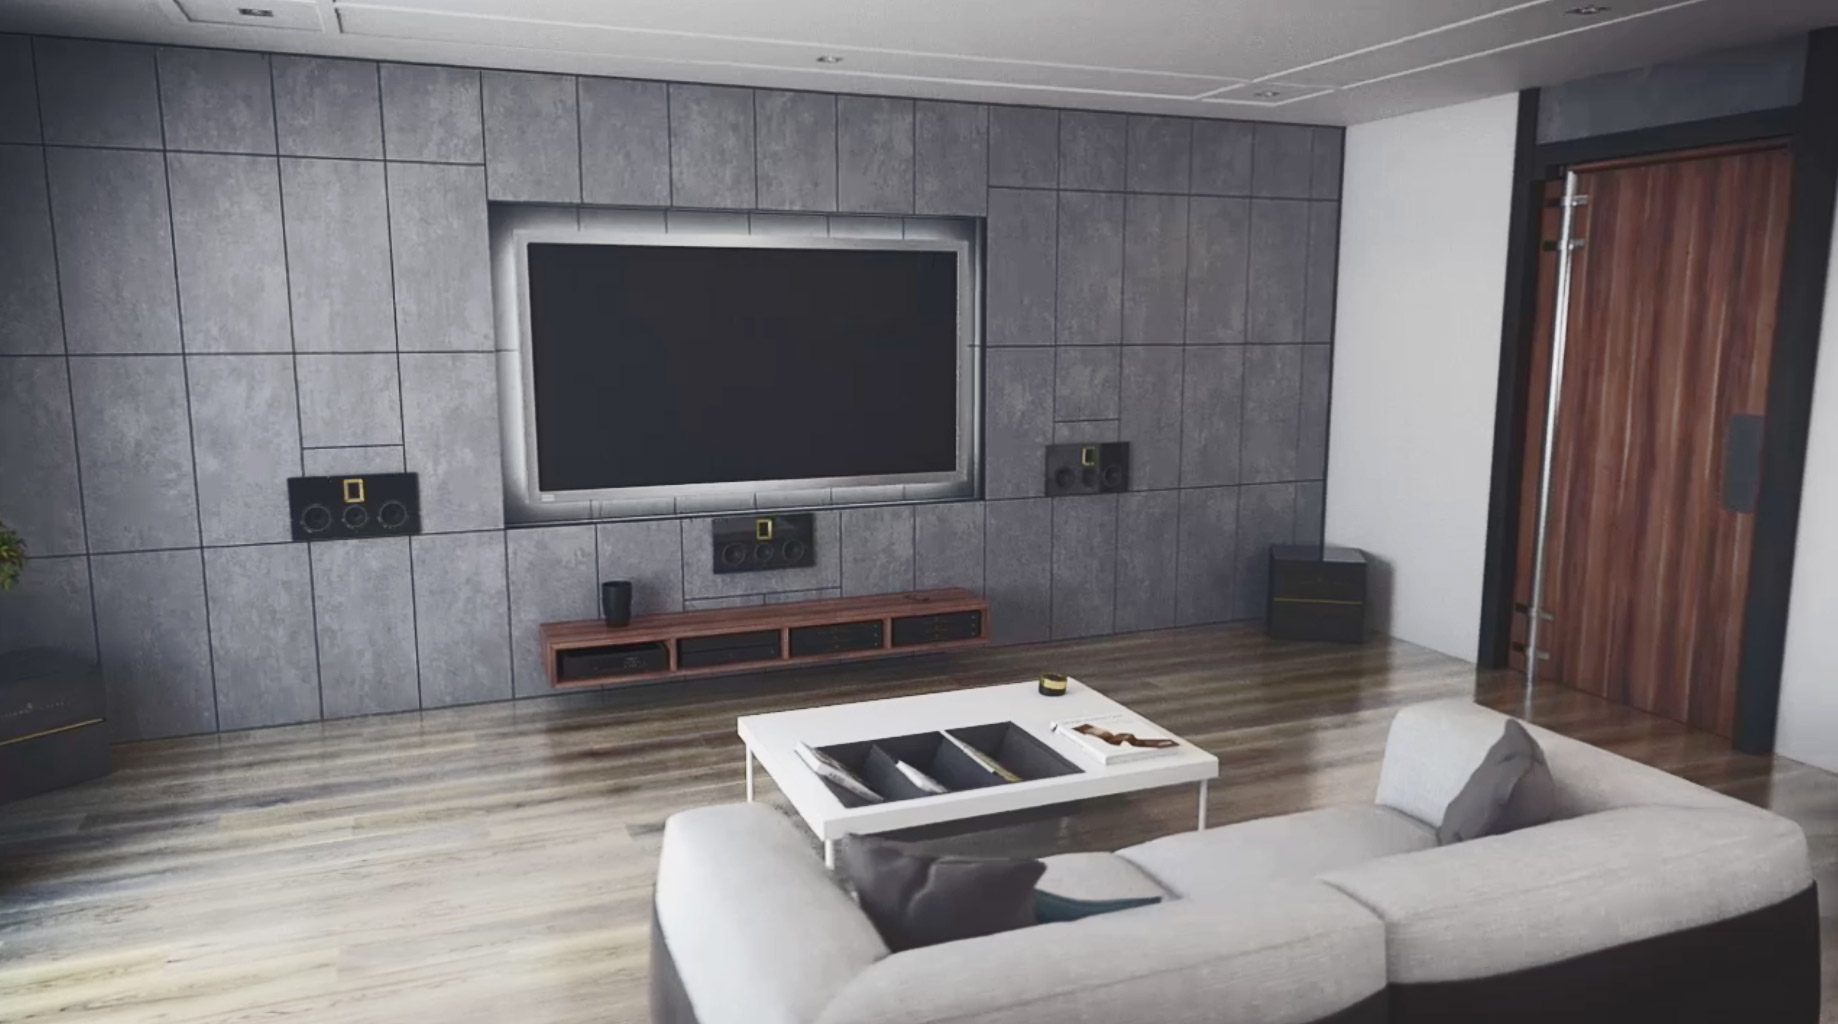 How To Get The Most Out of Your Custom Home Theater